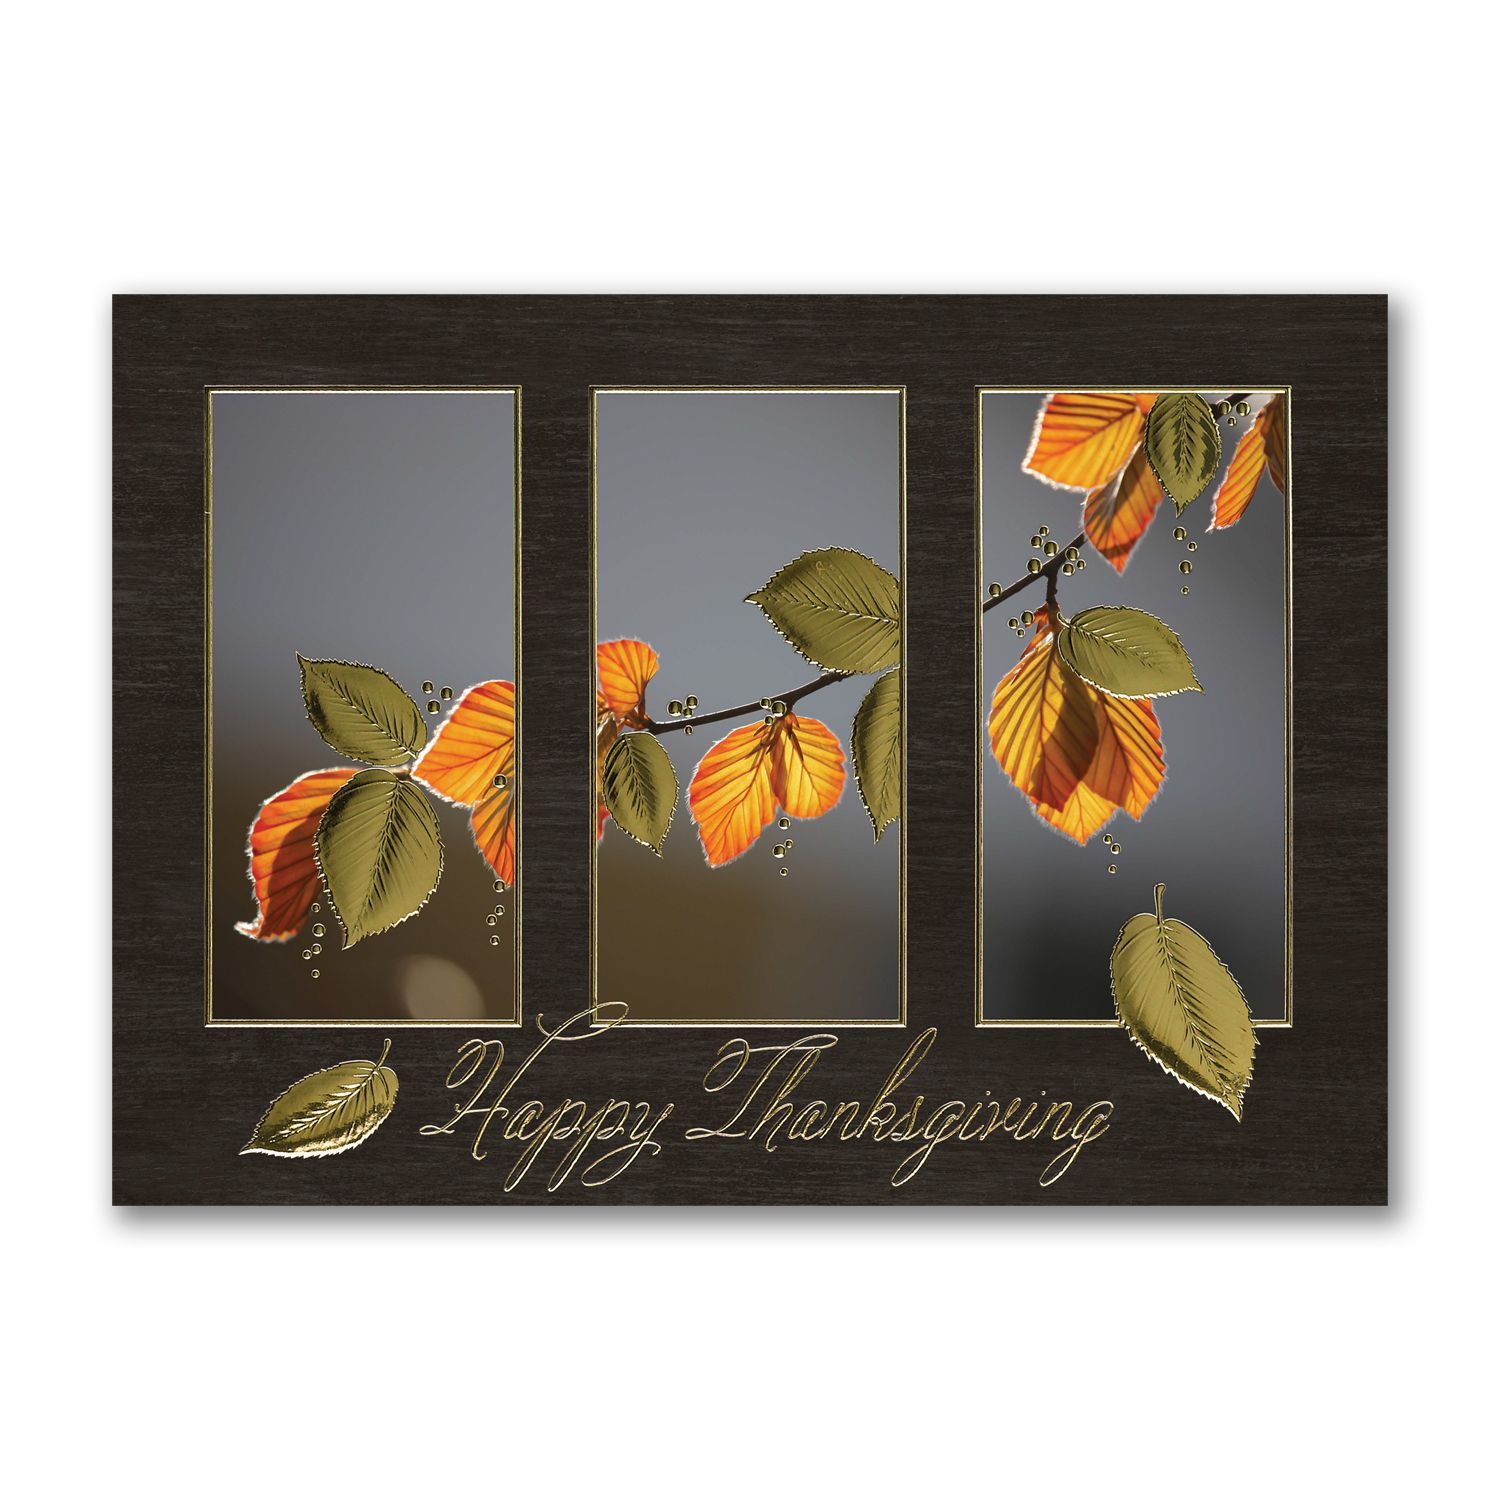 Happy Thanksgiving Leaves Custom Printed Thanksgiving Greetings